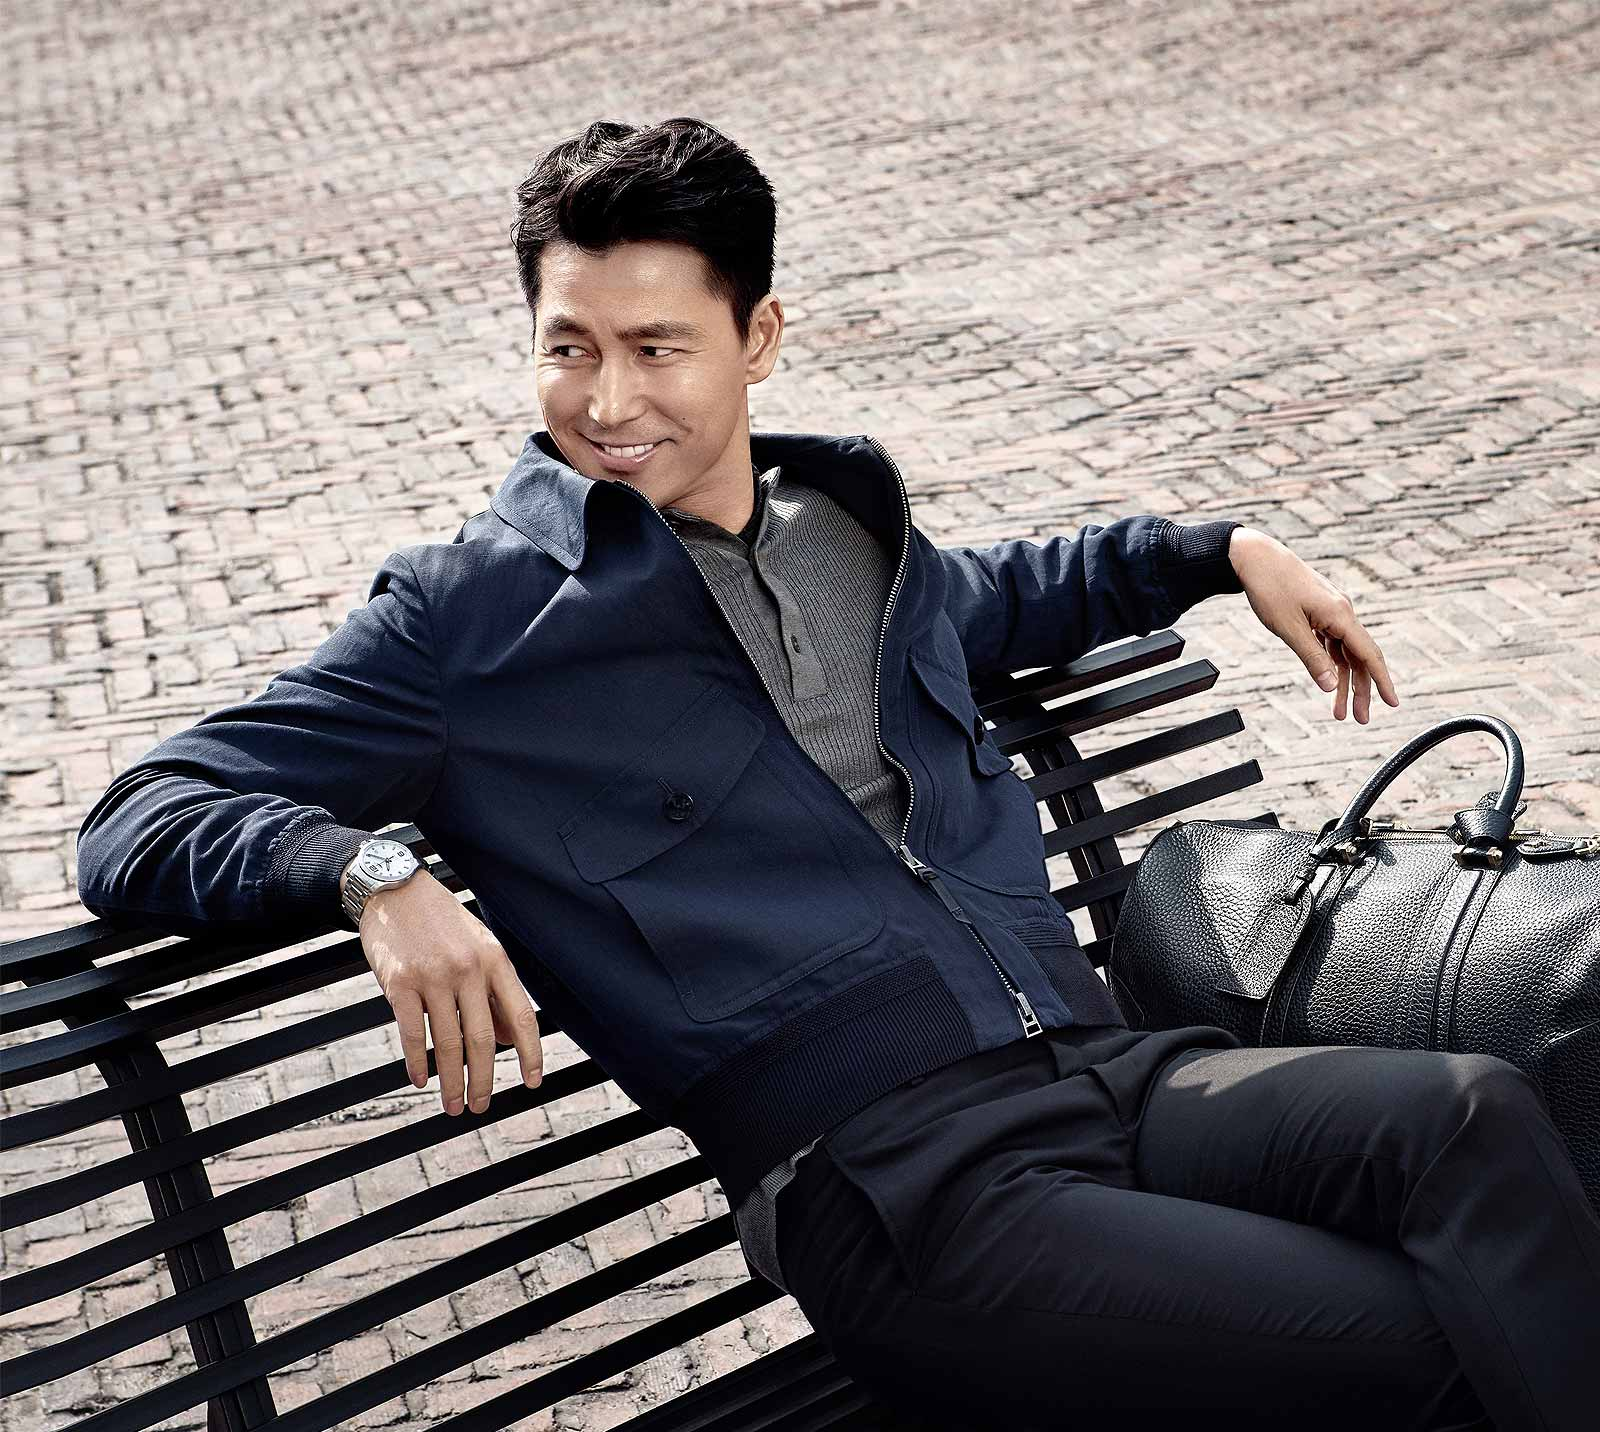 The South Korean actor Jung Woo Sung has been appointed as Longines Ambassador of Elegance